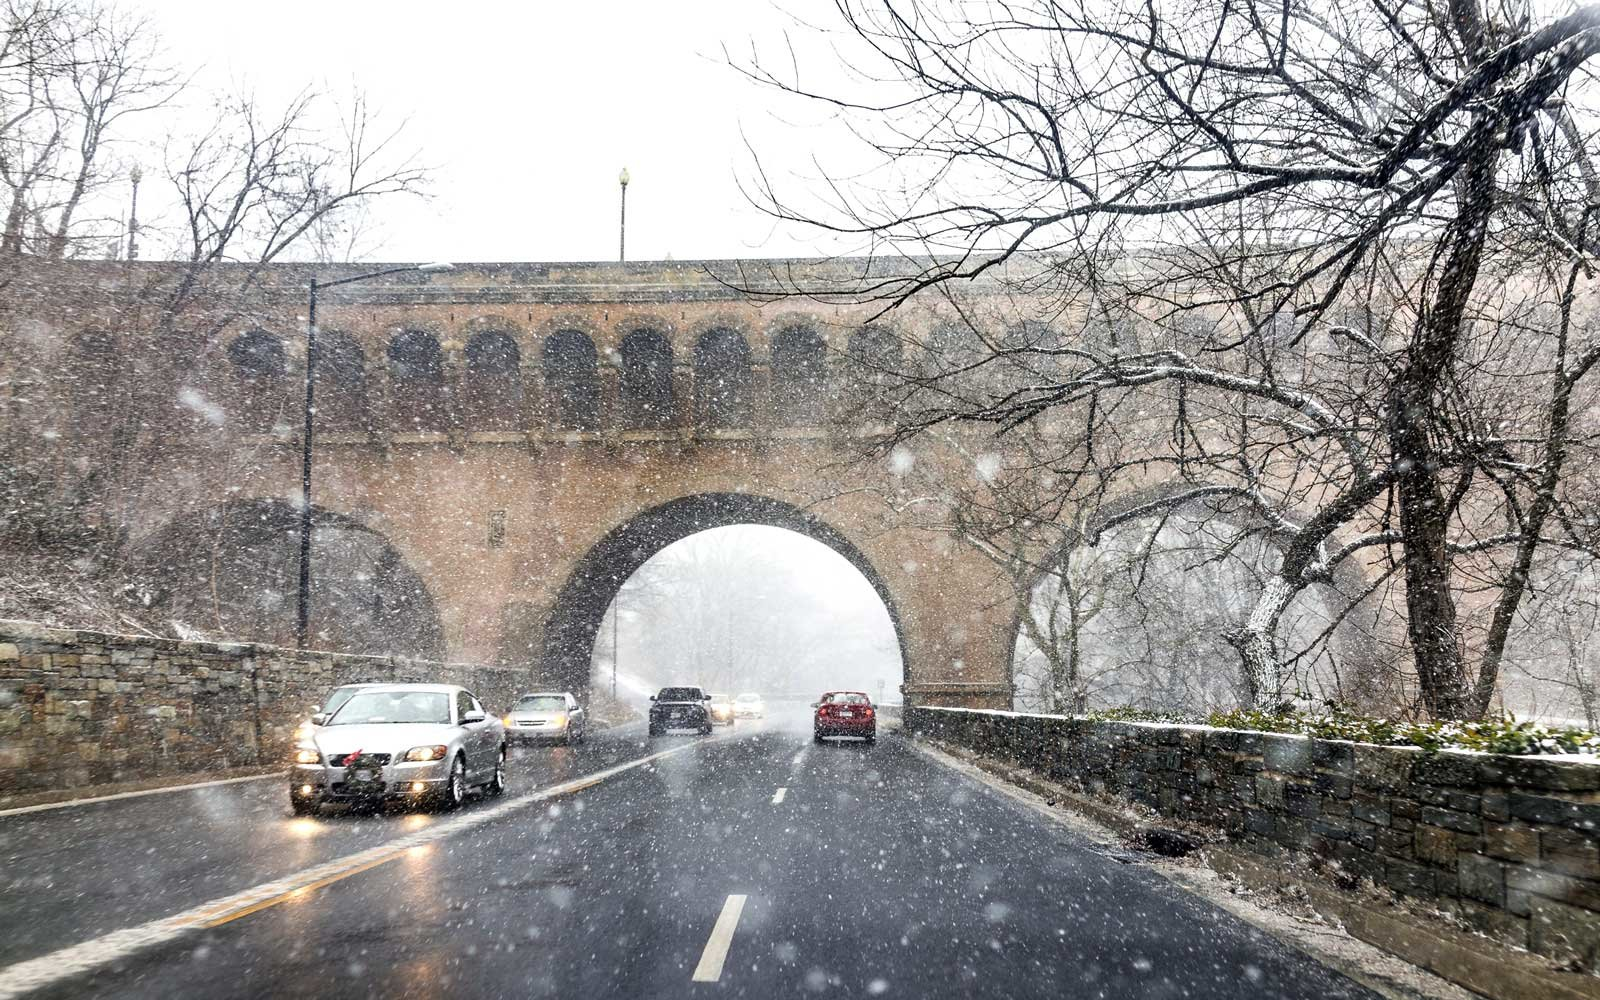 Snow storm with cars and Dumbarton bridge with arches